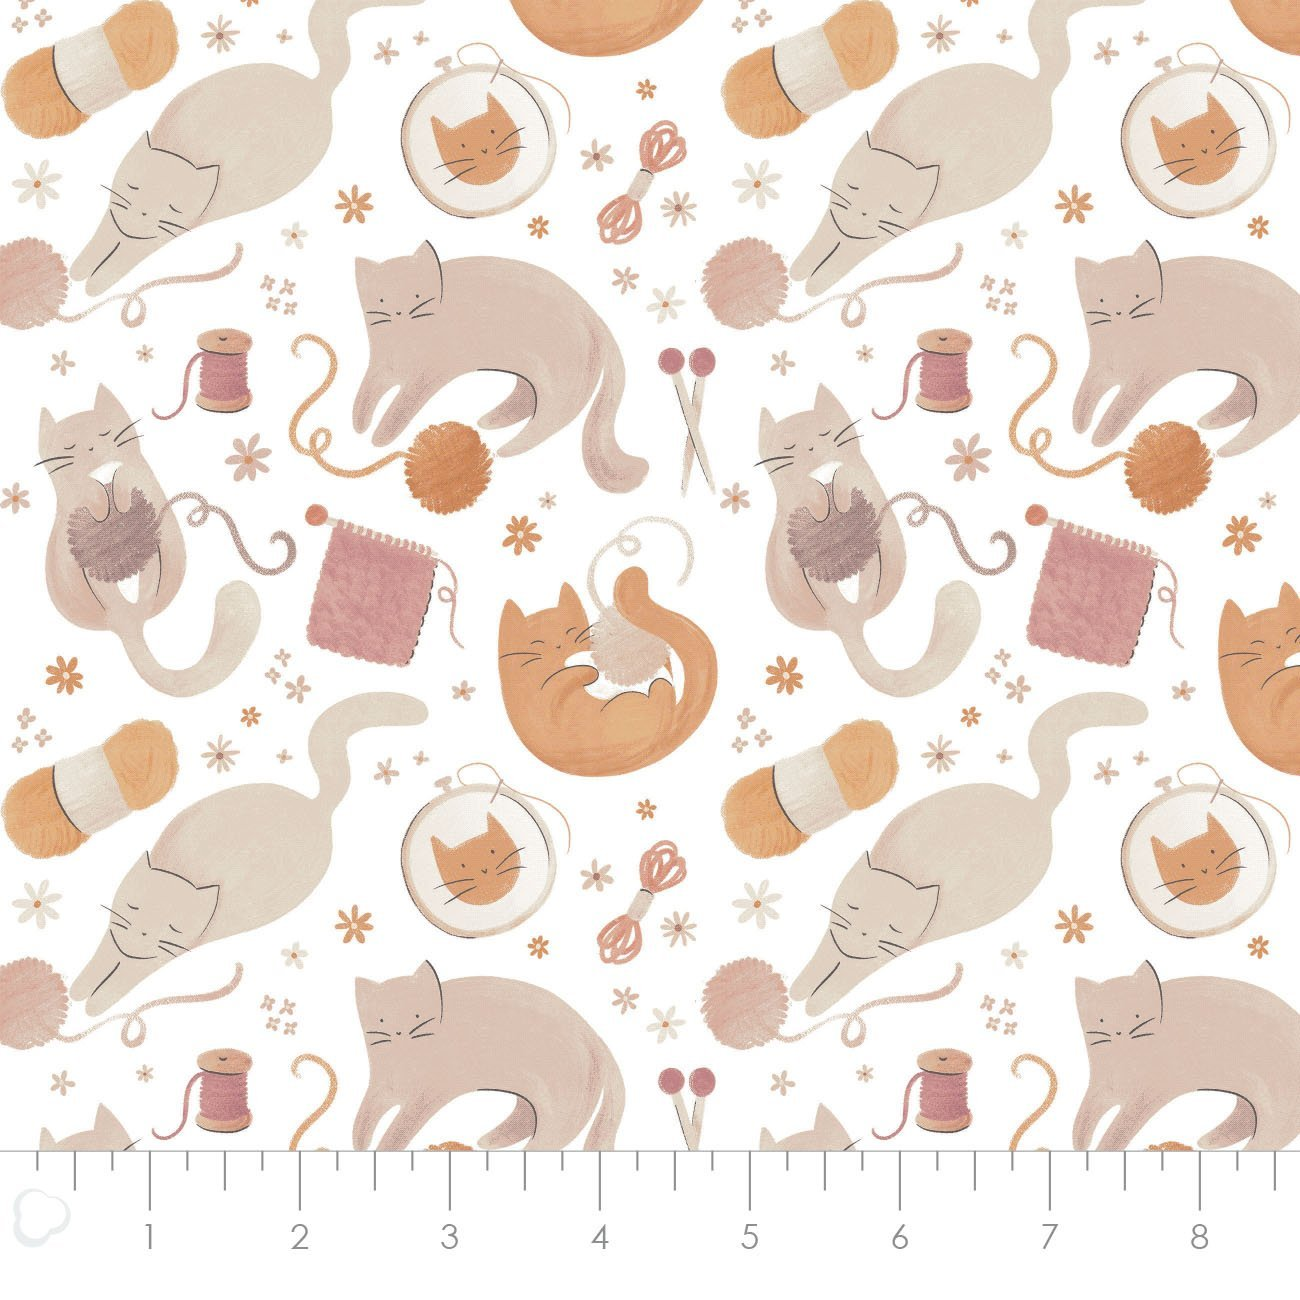 Smitten Kitten by Laura Marshall for Camelot Fabric